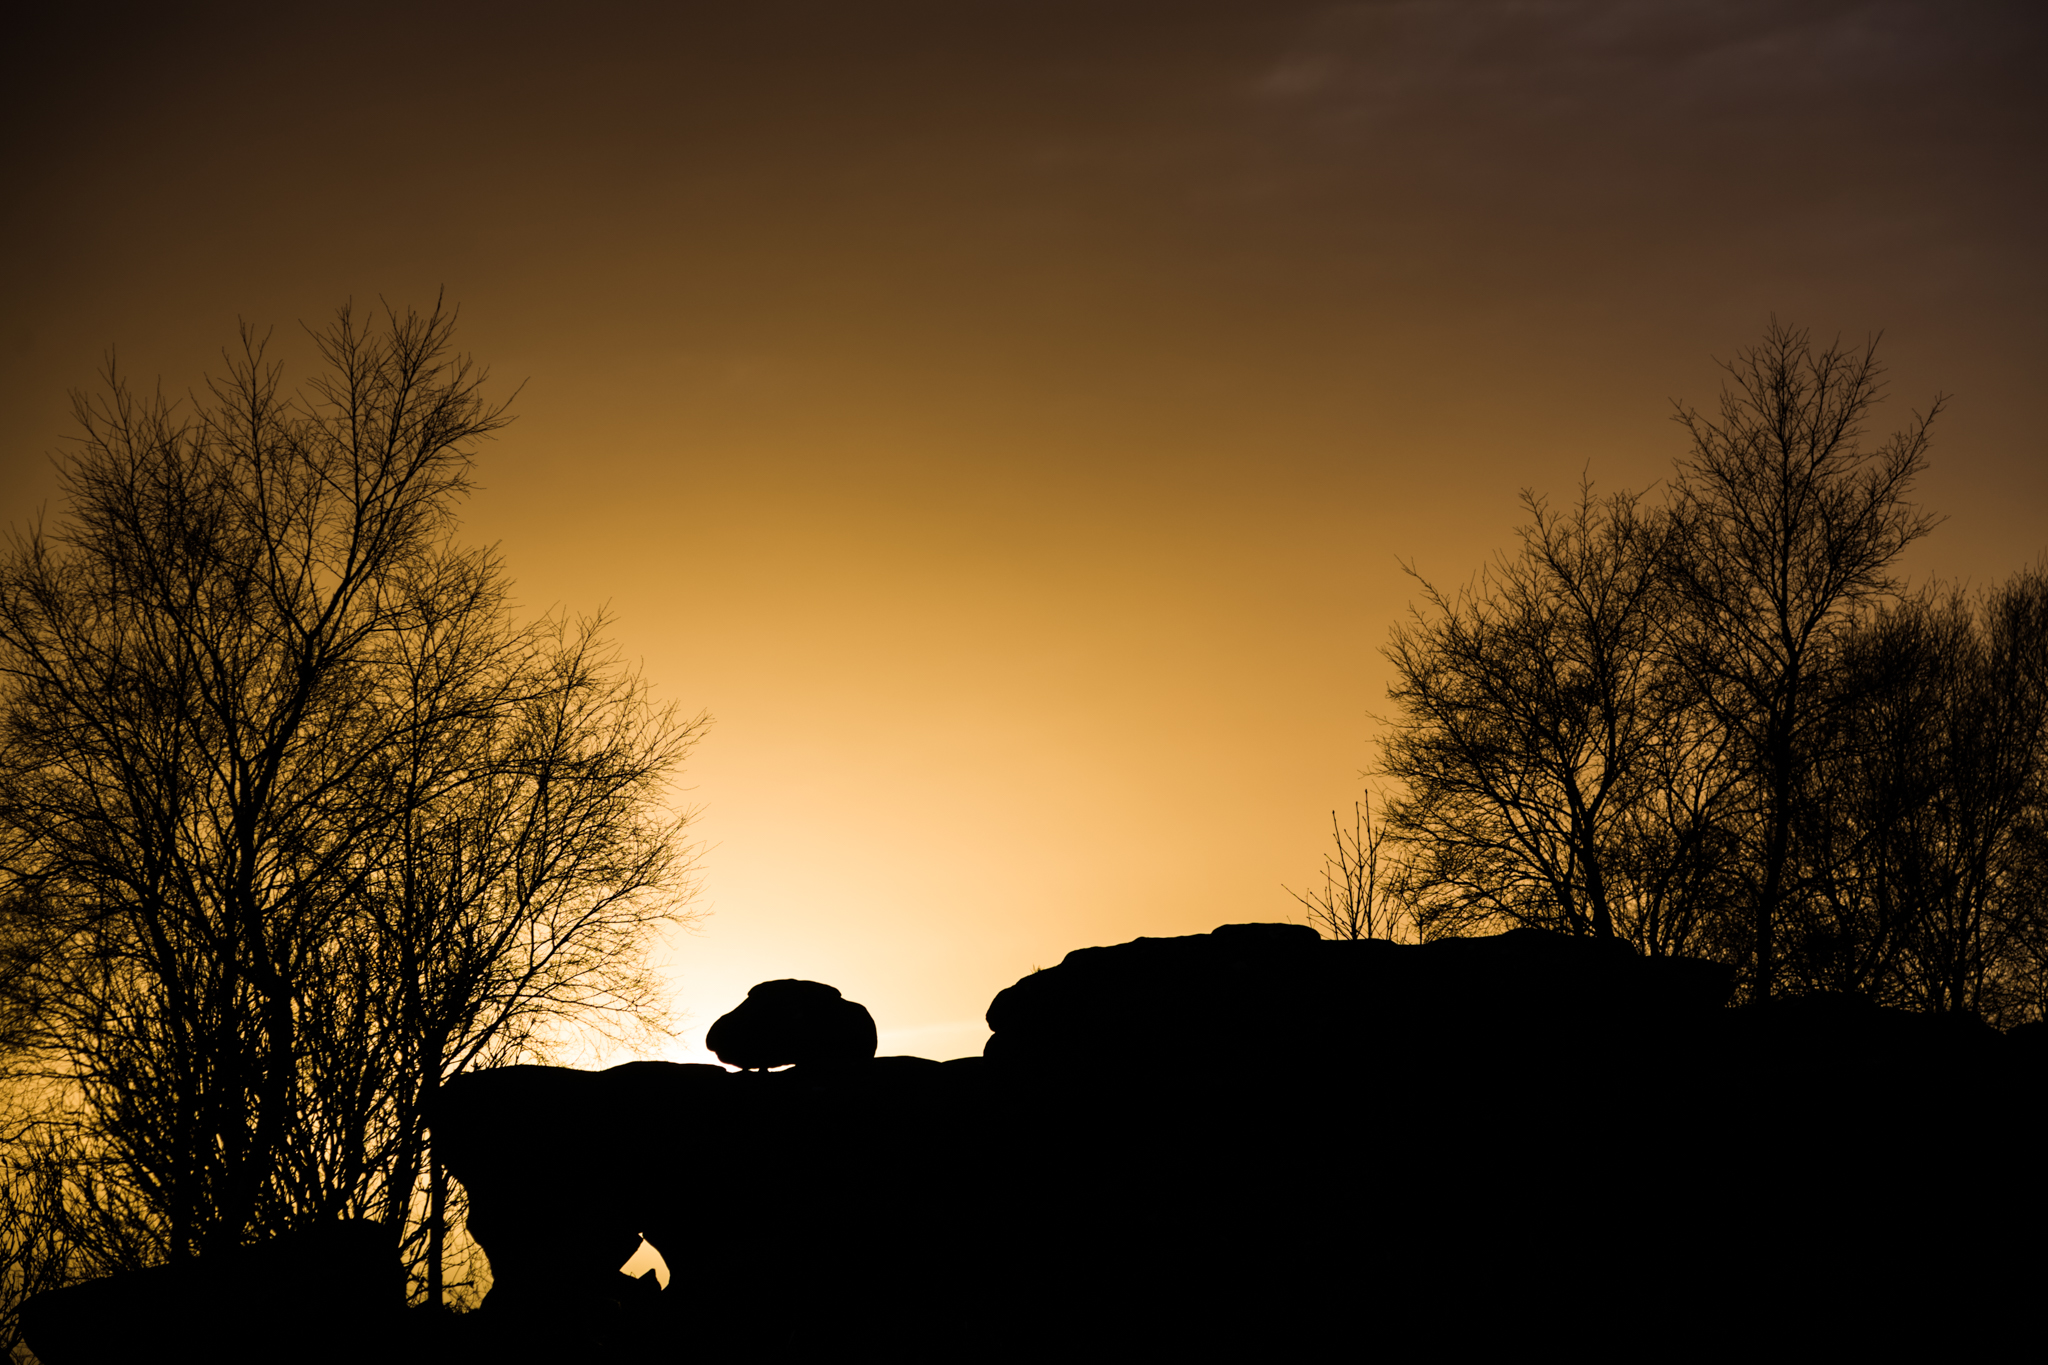 I caught this silhouette at Brimham Rocks in North Yorkshire as the sun was setting toward the end of a long day.